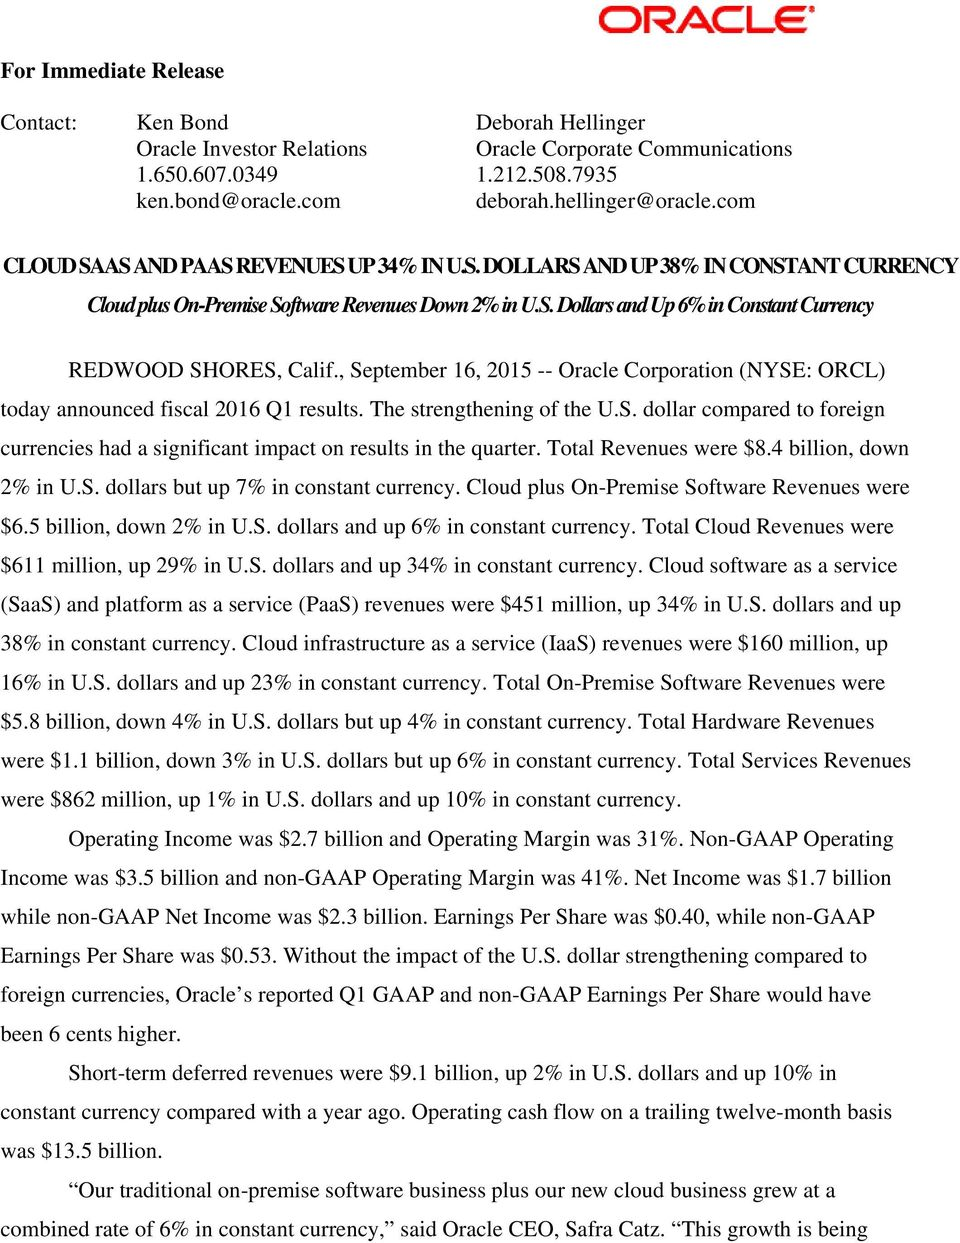 , September 16, 2015 -- Oracle Corporation (NYSE: ORCL) today announced fiscal 2016 Q1 results. The strengthening of the U.S. dollar compared to foreign currencies had a significant impact on results in the quarter.